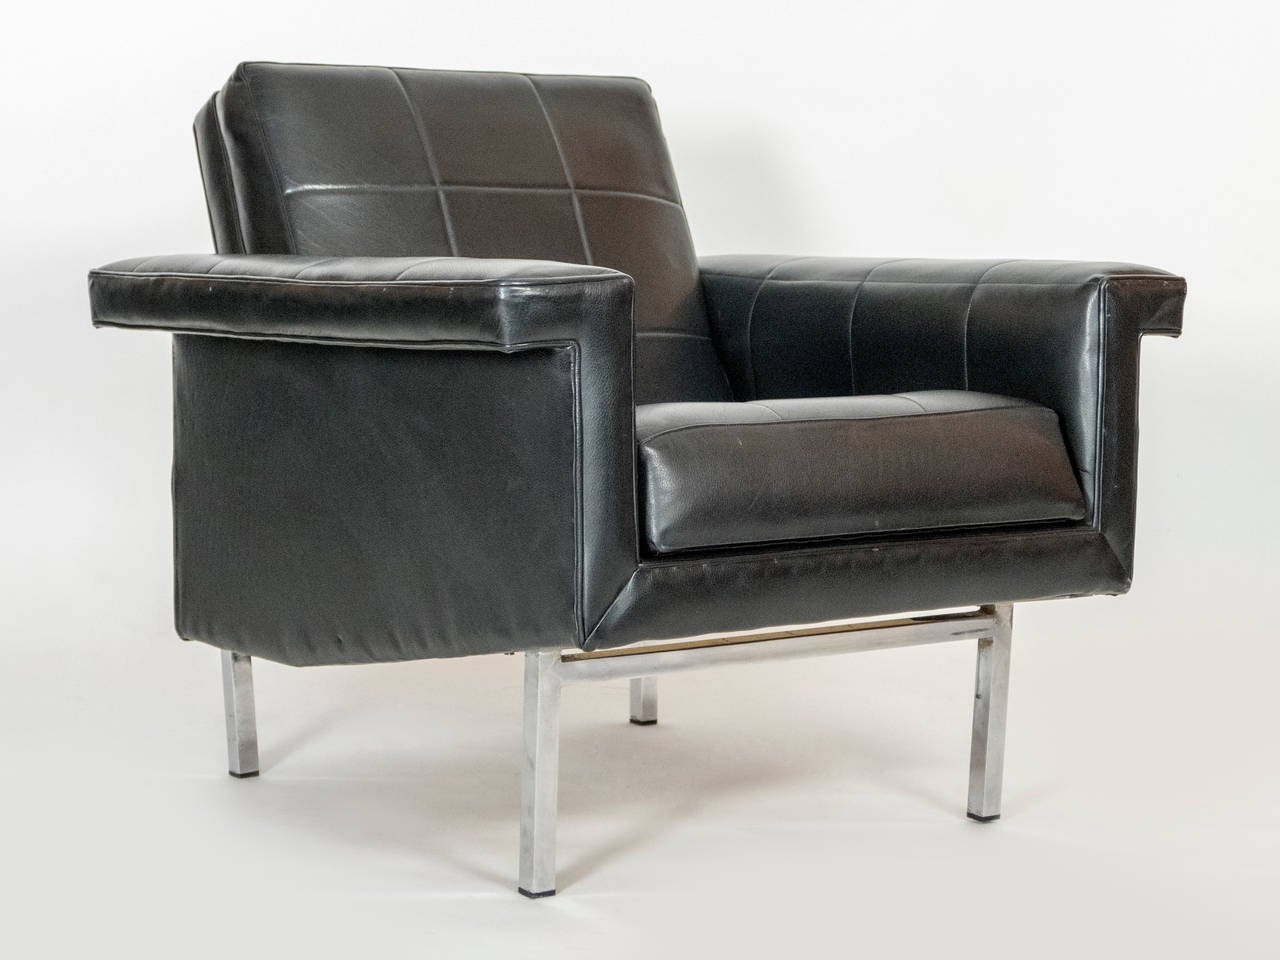 Two vintage condition armchairs,  Super inviting and comfortable. The lines of the chairs are very stylish.   Original leather in great shape.   Chrome has a nice patina for the age proving its authenticity.